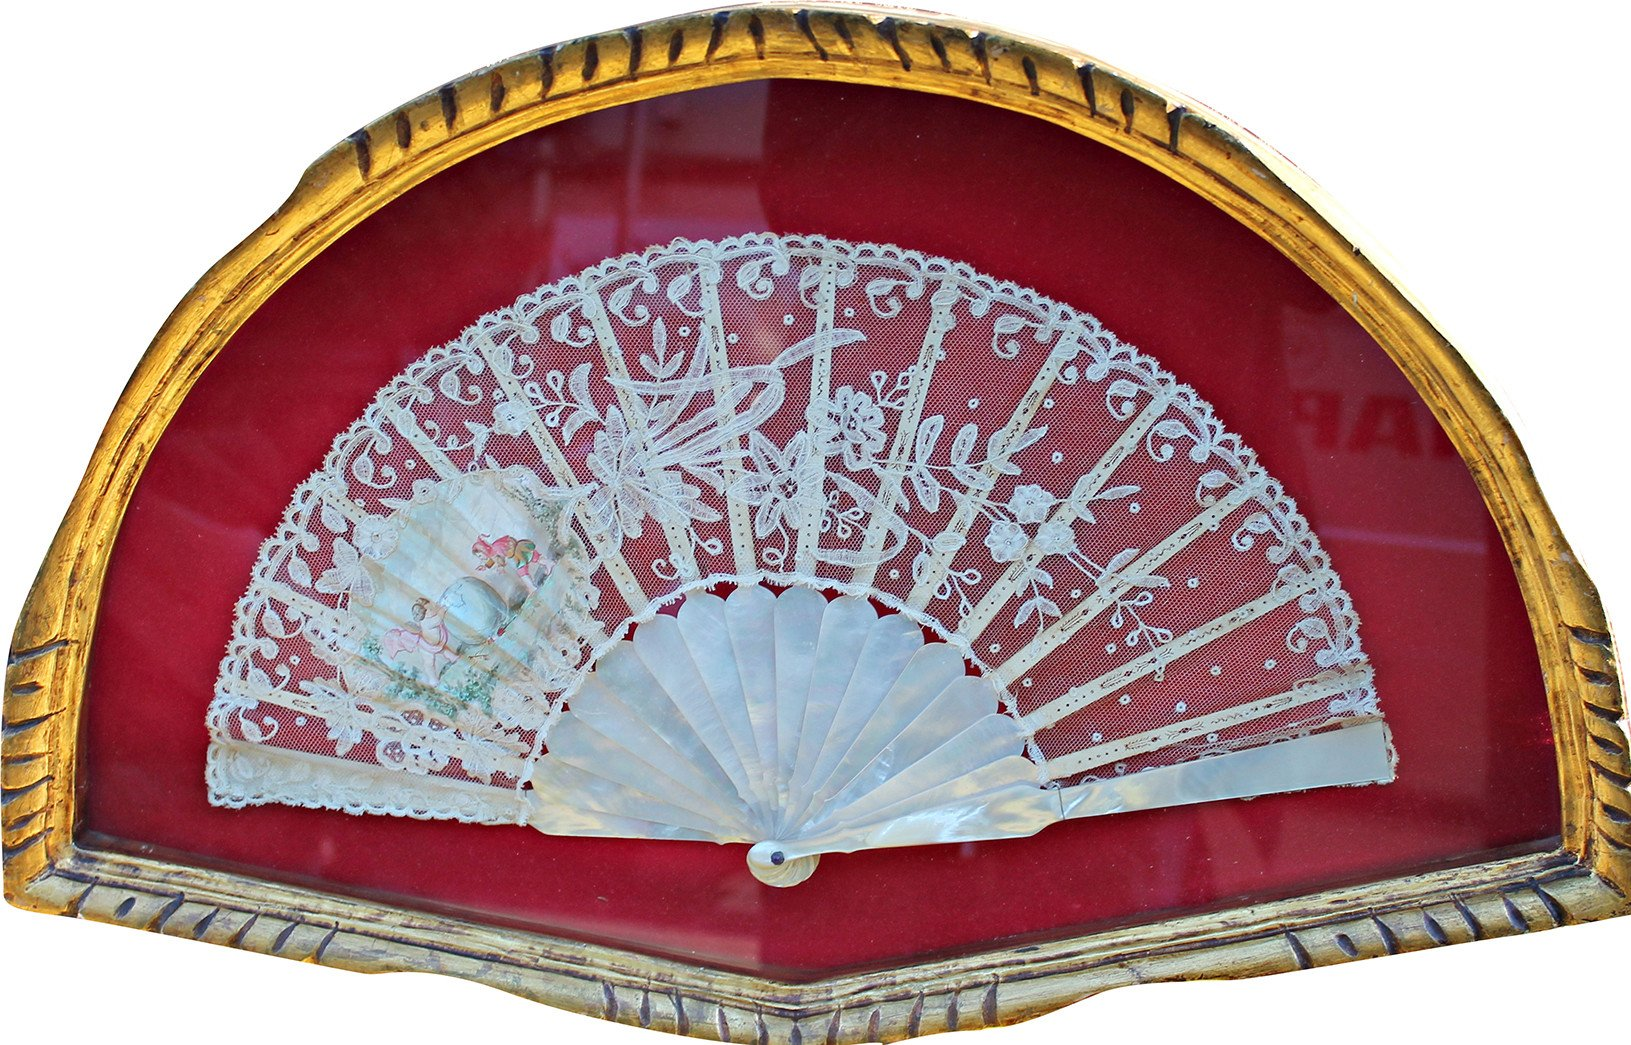 Nacre Fan, England, early 20th C.